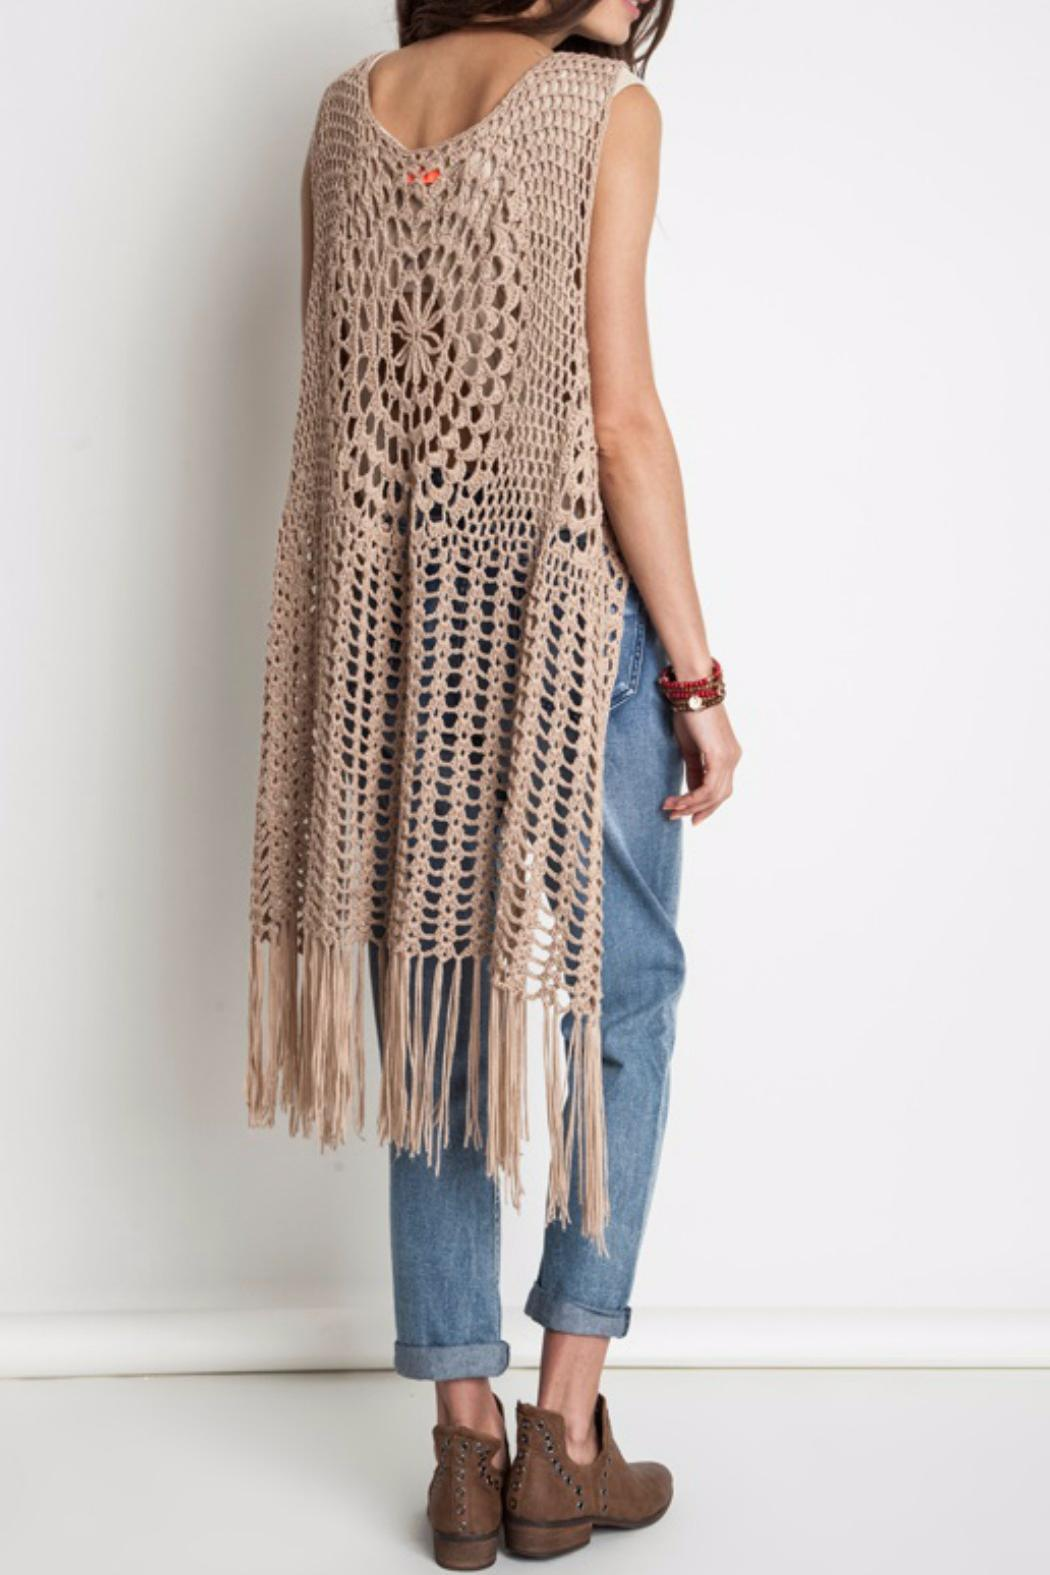 Harlow Crochet Vest by Umgee (Taupe) · TQS · Online Store Powered by ...